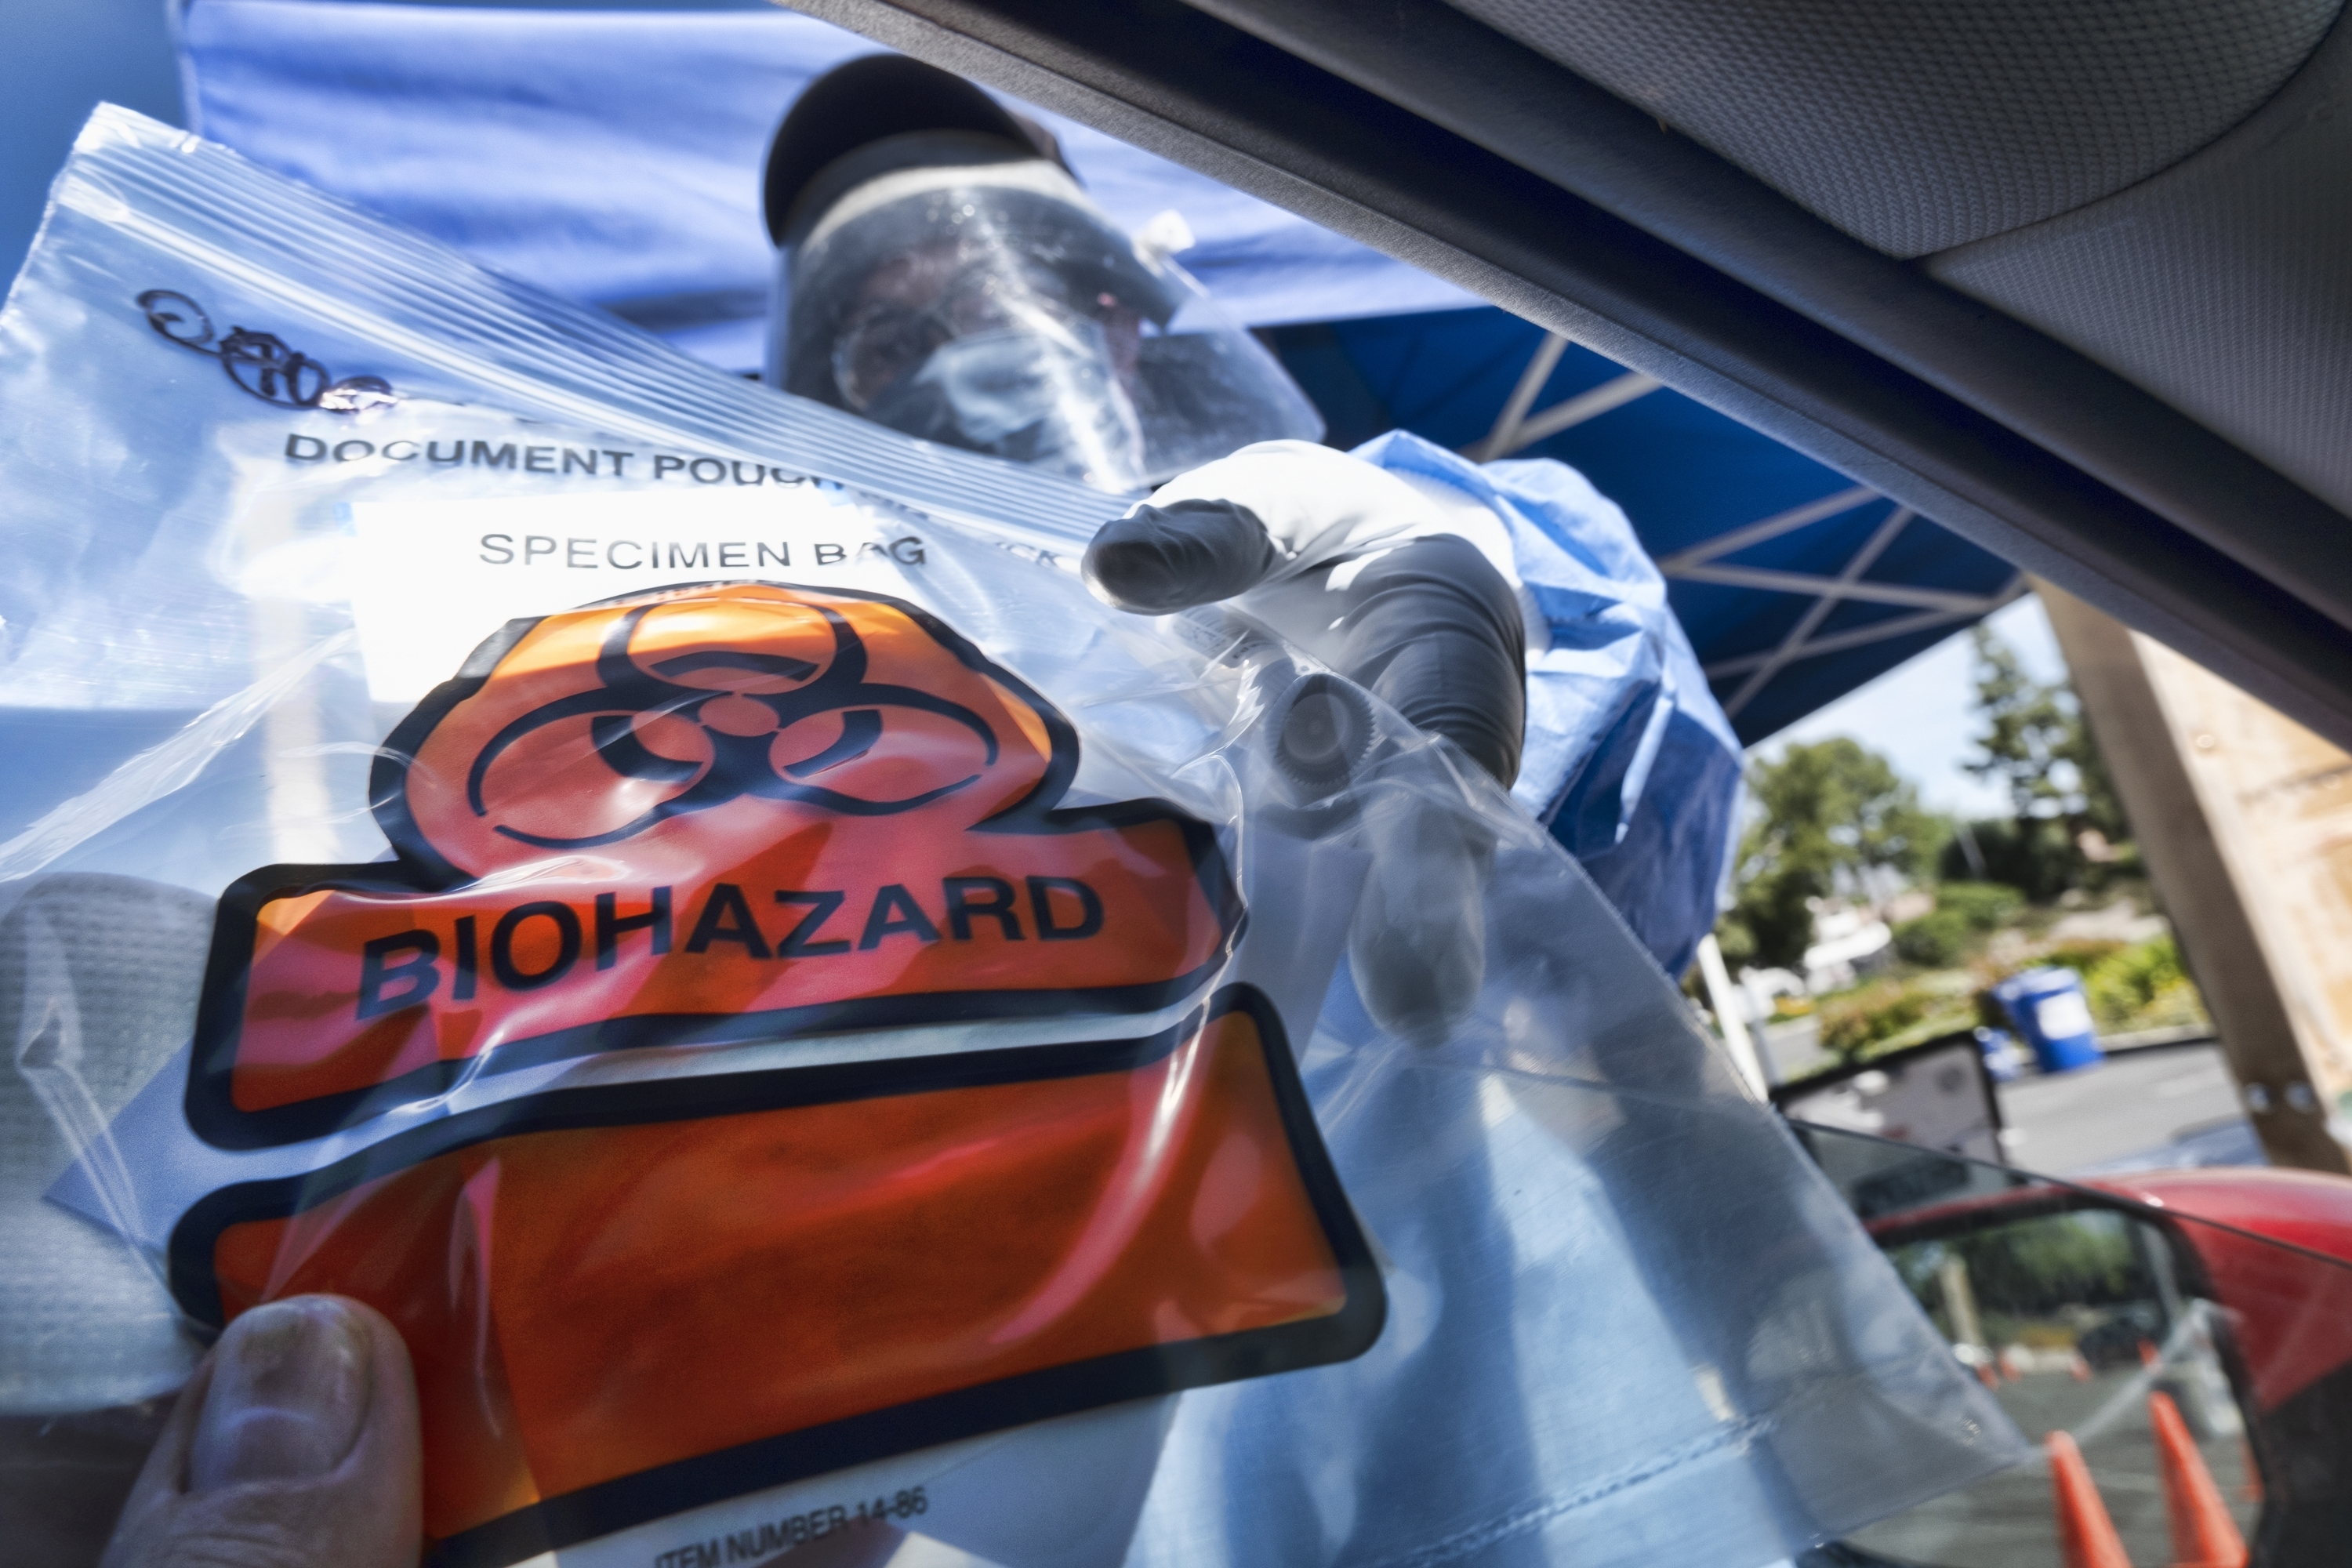 In this May 6, 2020 photo a medical worker hands a self administered coronavirus test to a patient at a drive through testing site in a parking lot in the Woodland Hills section of Los Angeles. California's death count from the coronavirus surpassed 15,000 on Sunday, Sept. 20, even as the state saw widespread improvement in infection levels.